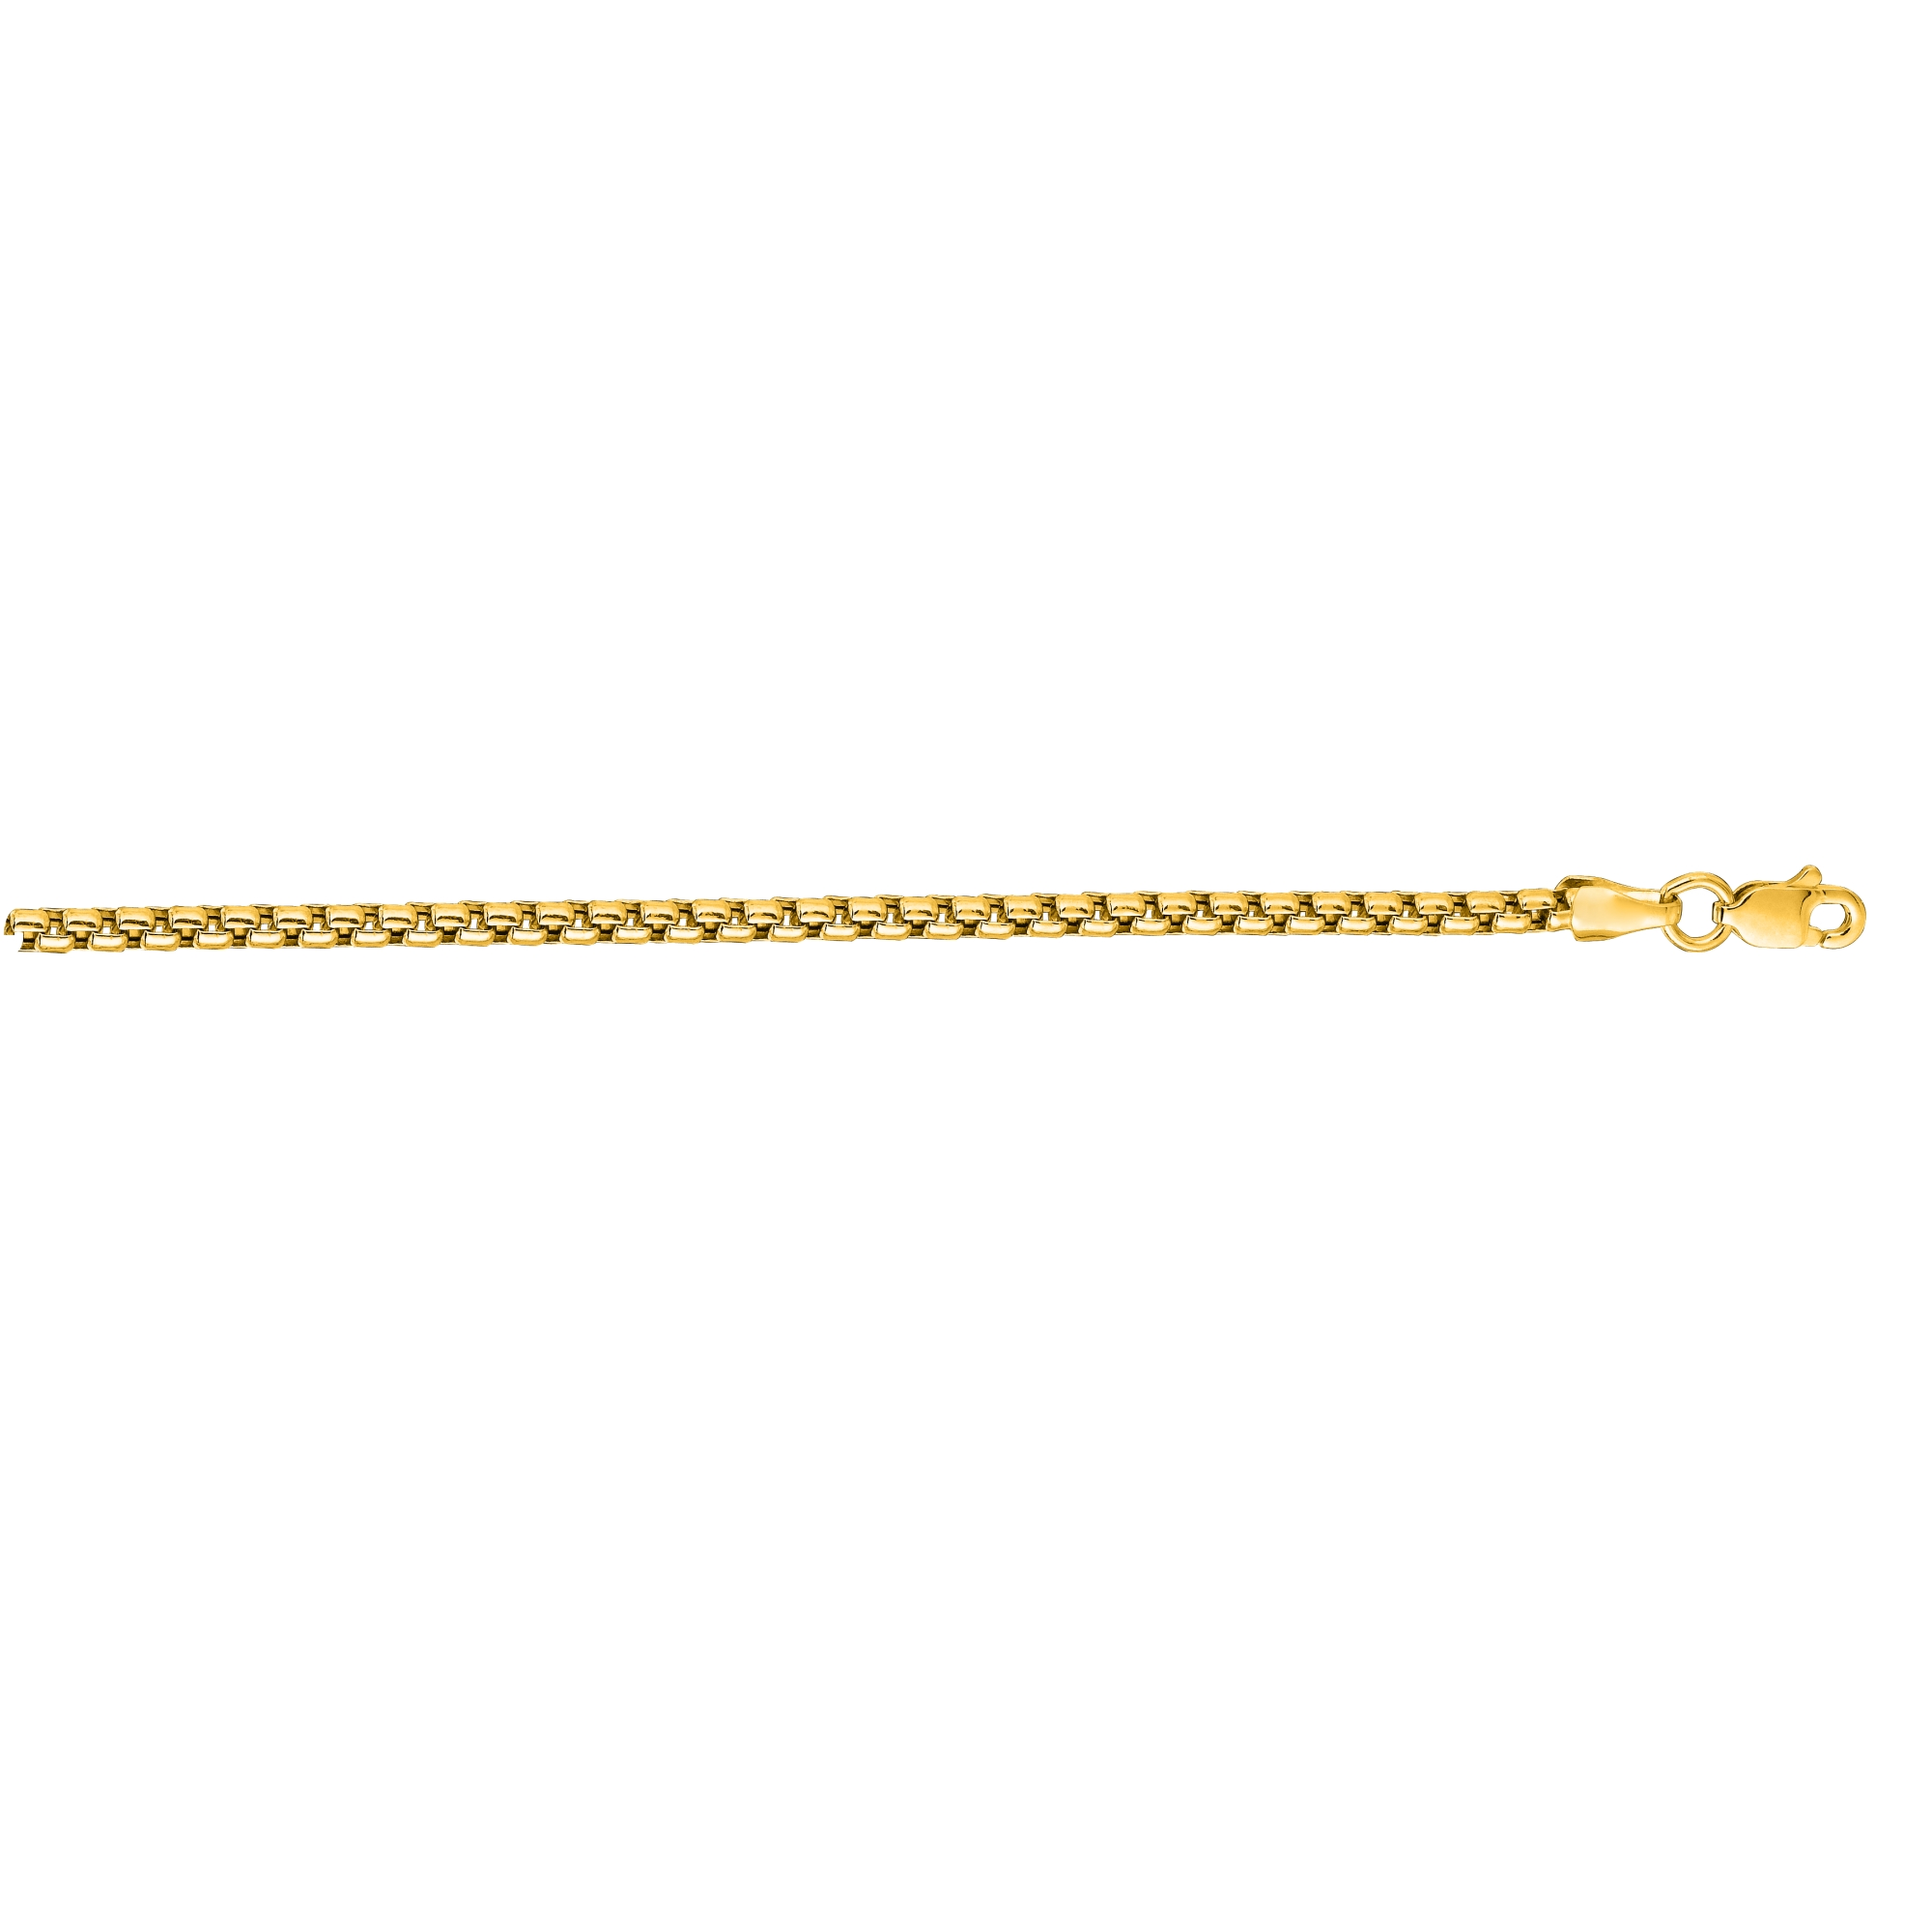 14kt 24 inches Yellow Gold 2.4mm Shiny Round Box Chain with Lobster Clasp